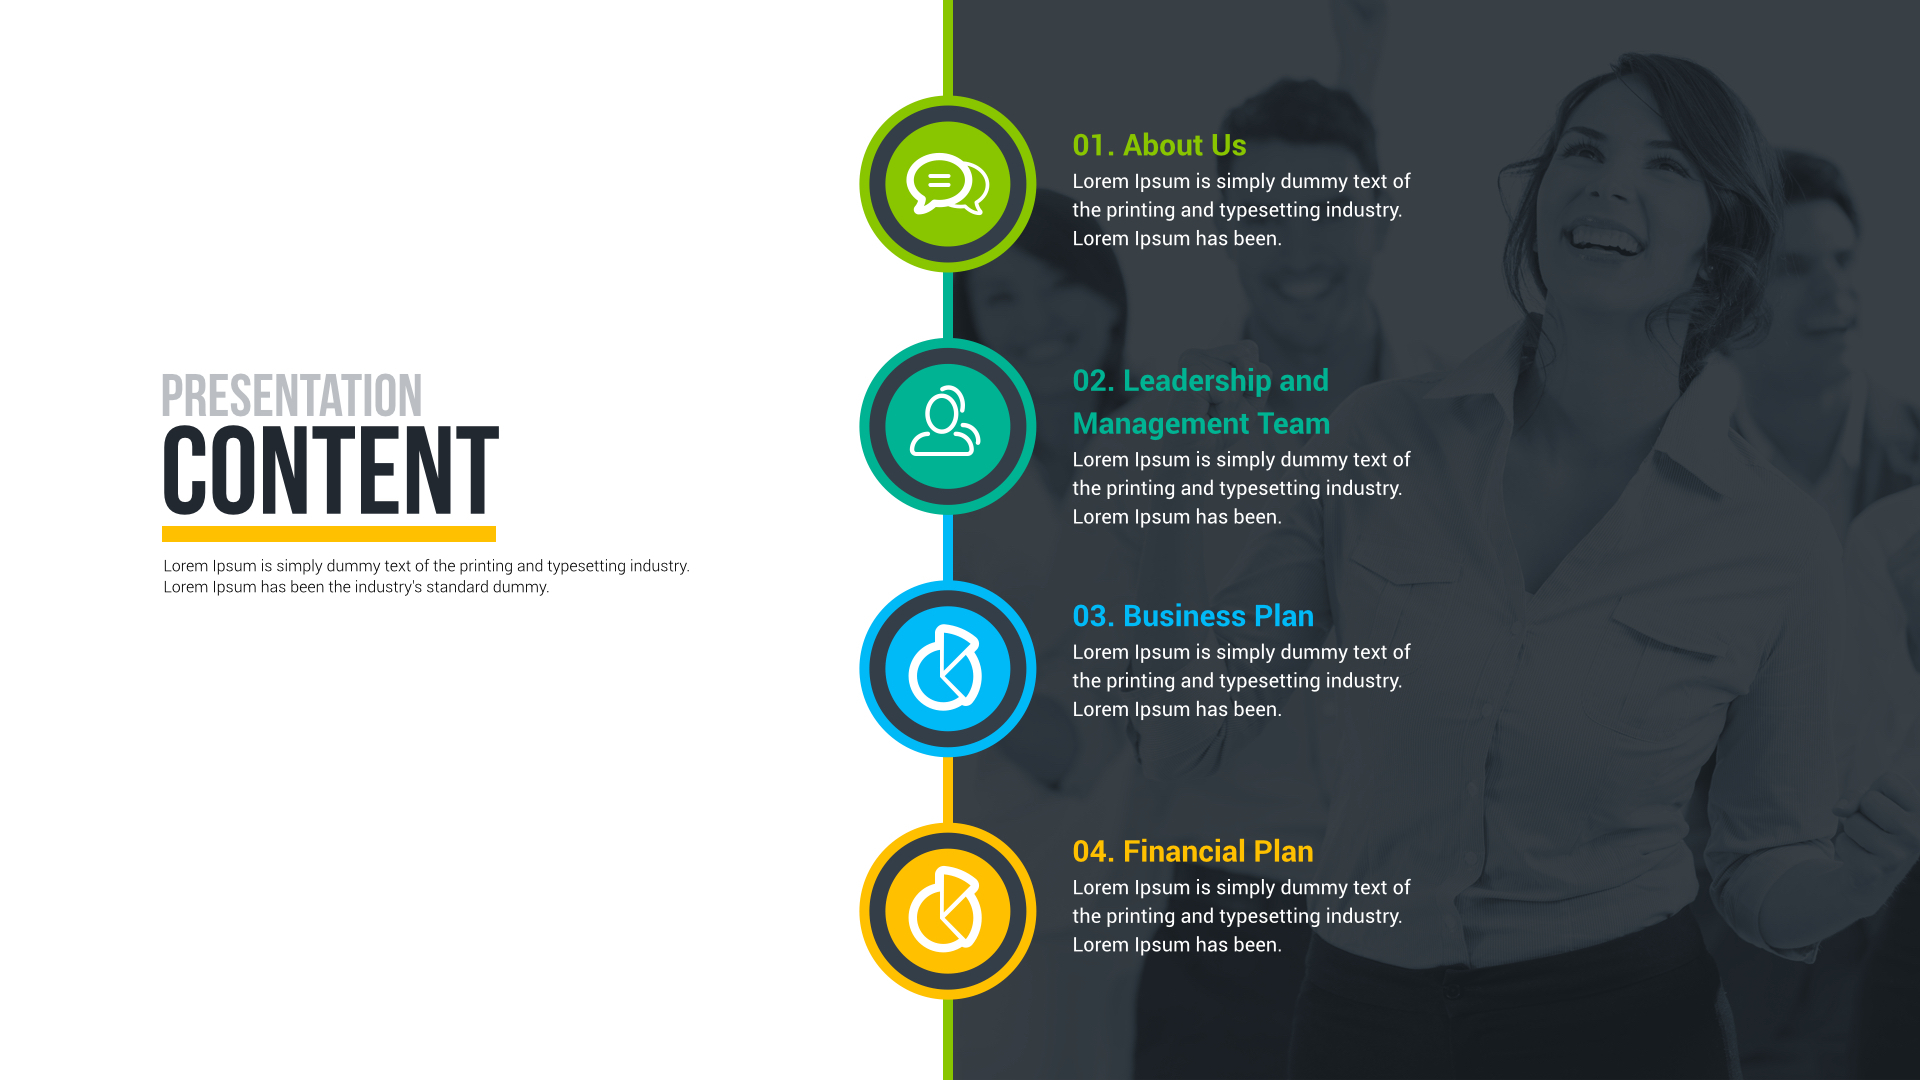 business plan powerpoint presentation free download | Papillon